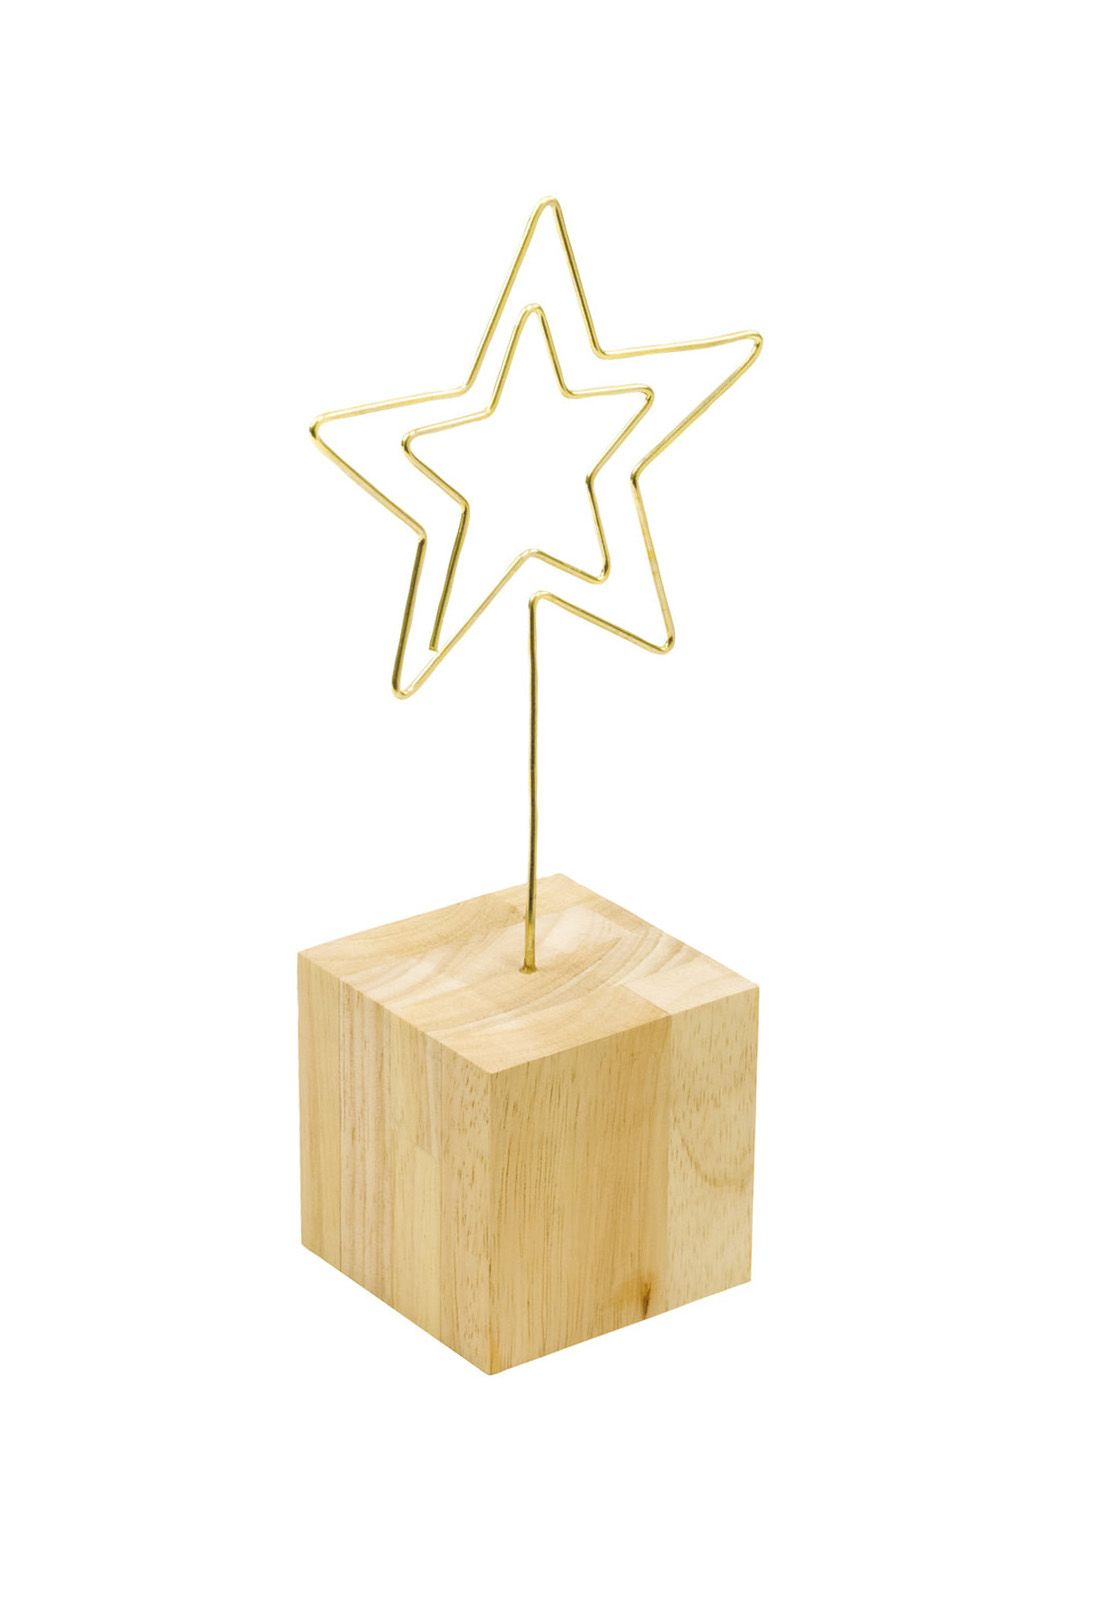 Desk Photo Clip Light Wood Block Star